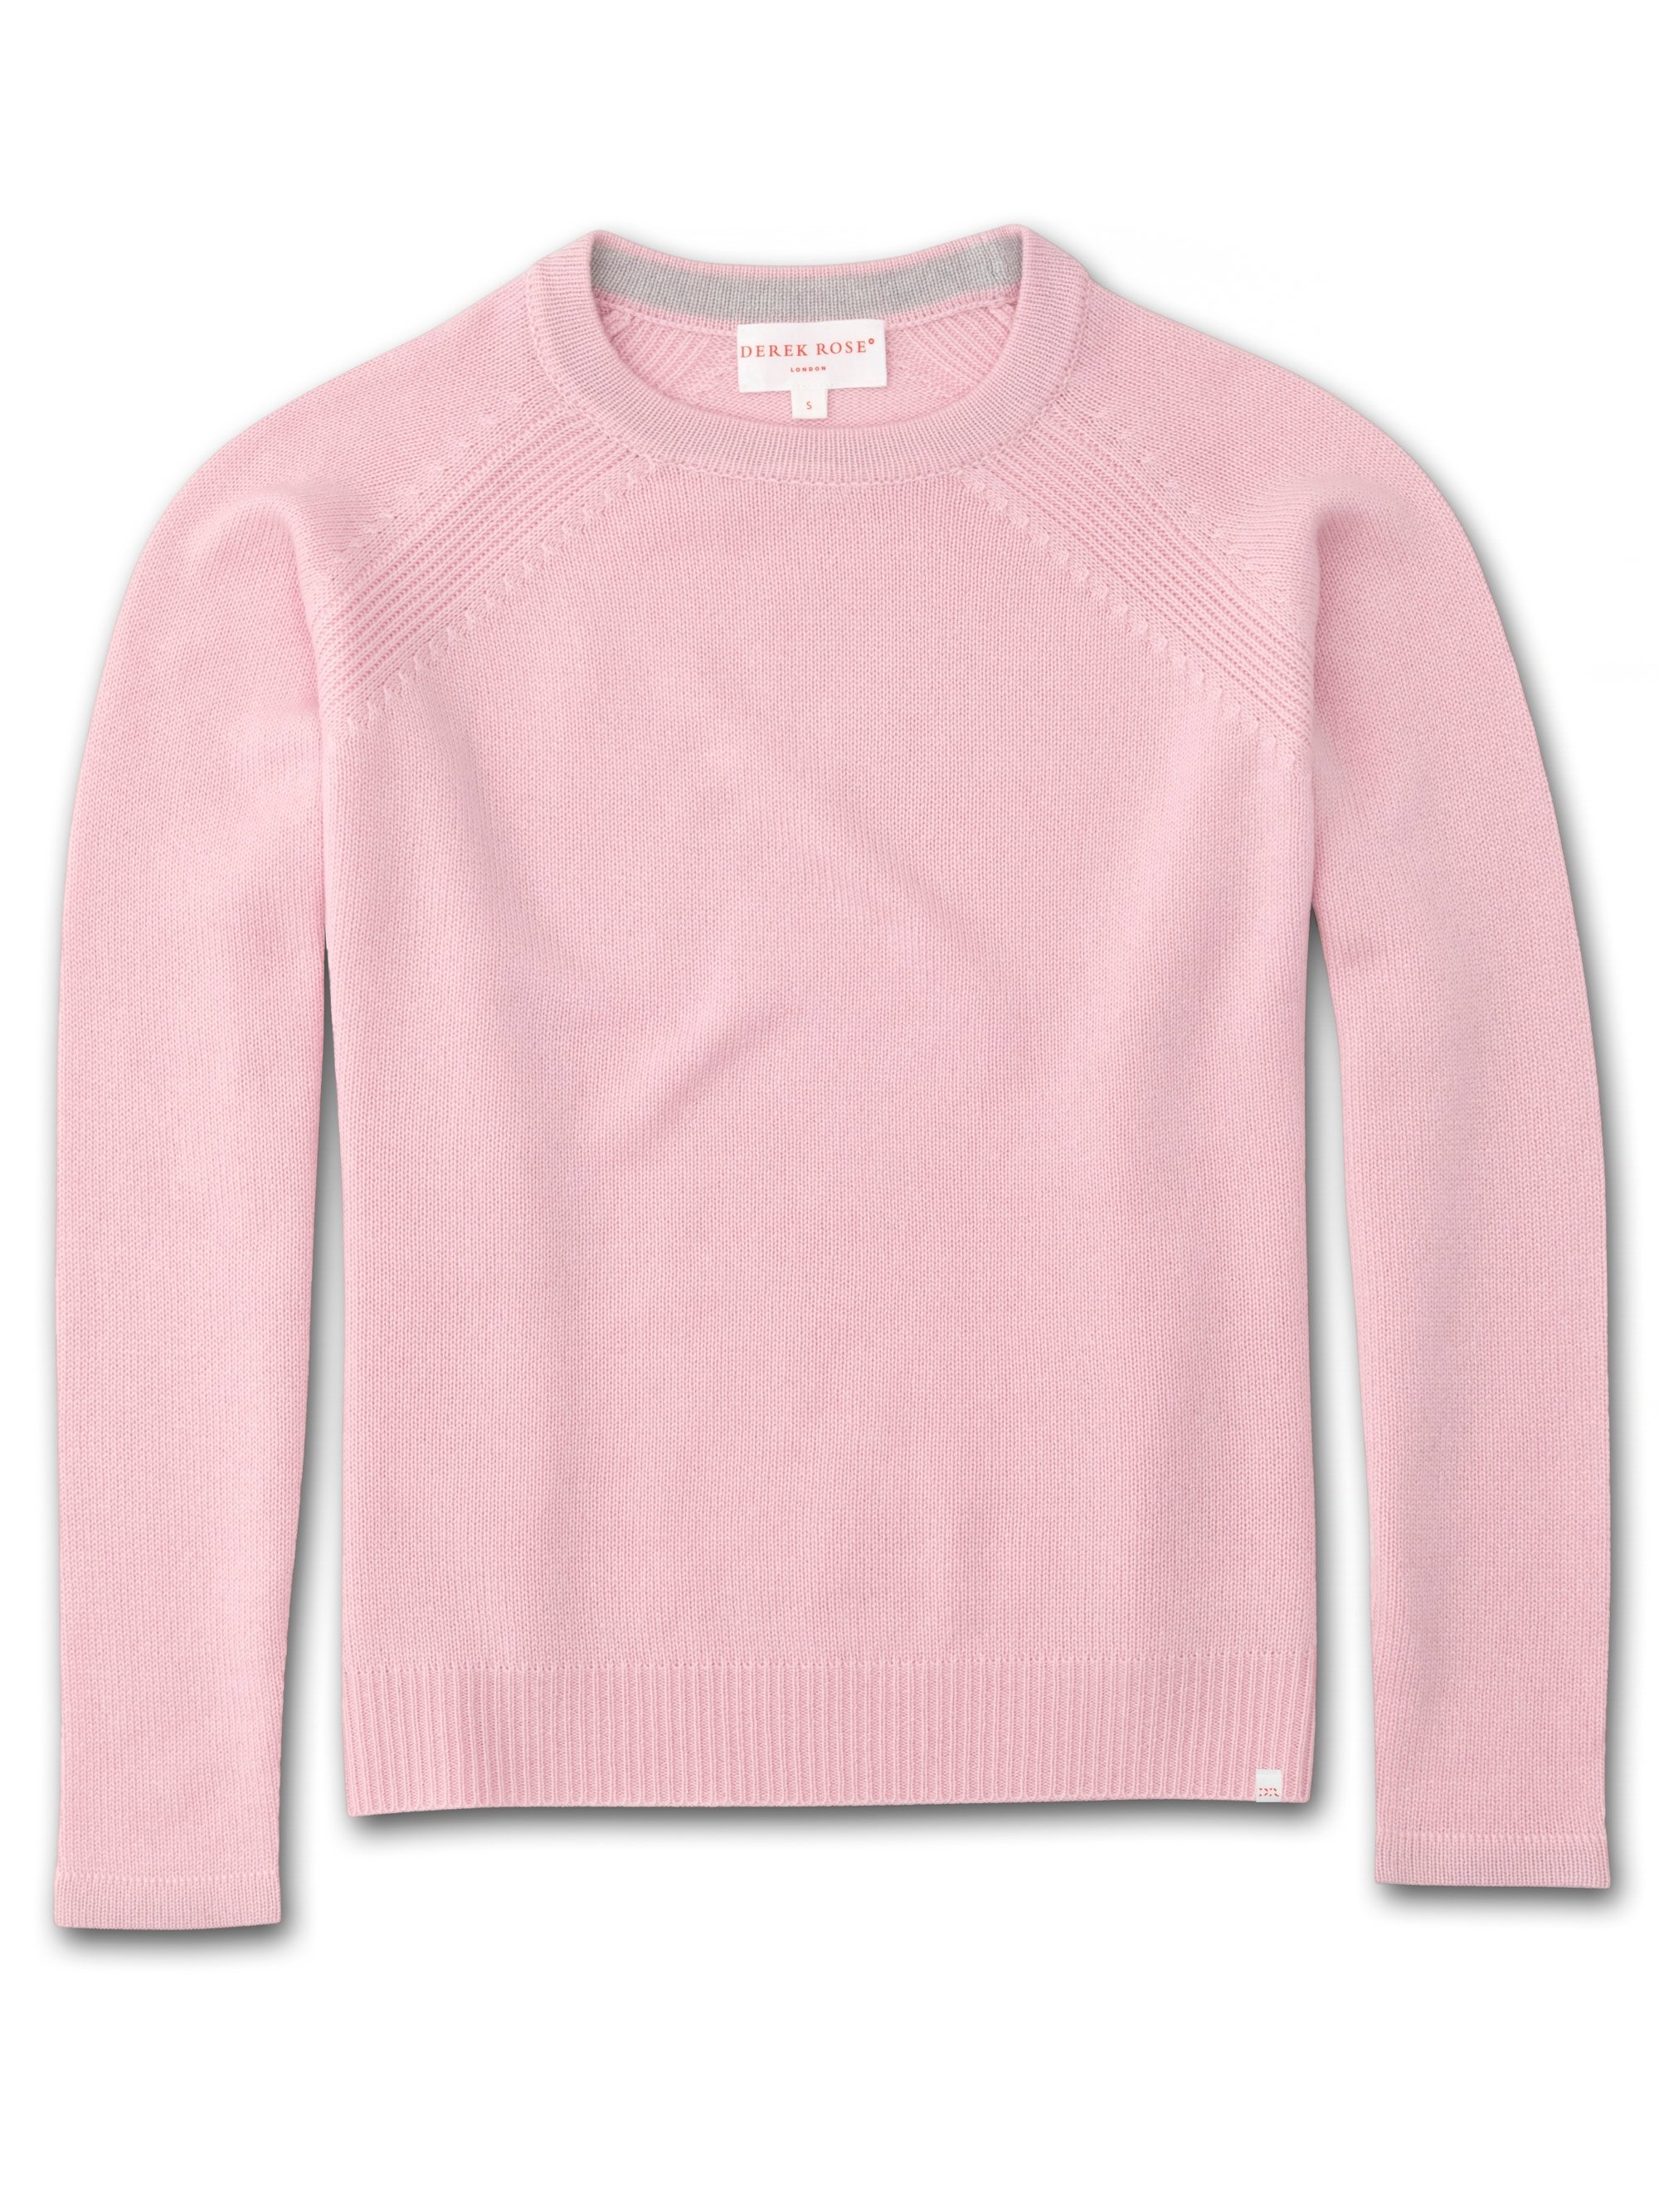 Women's Cashmere Sweater Daphne Pure Cashmere Pink